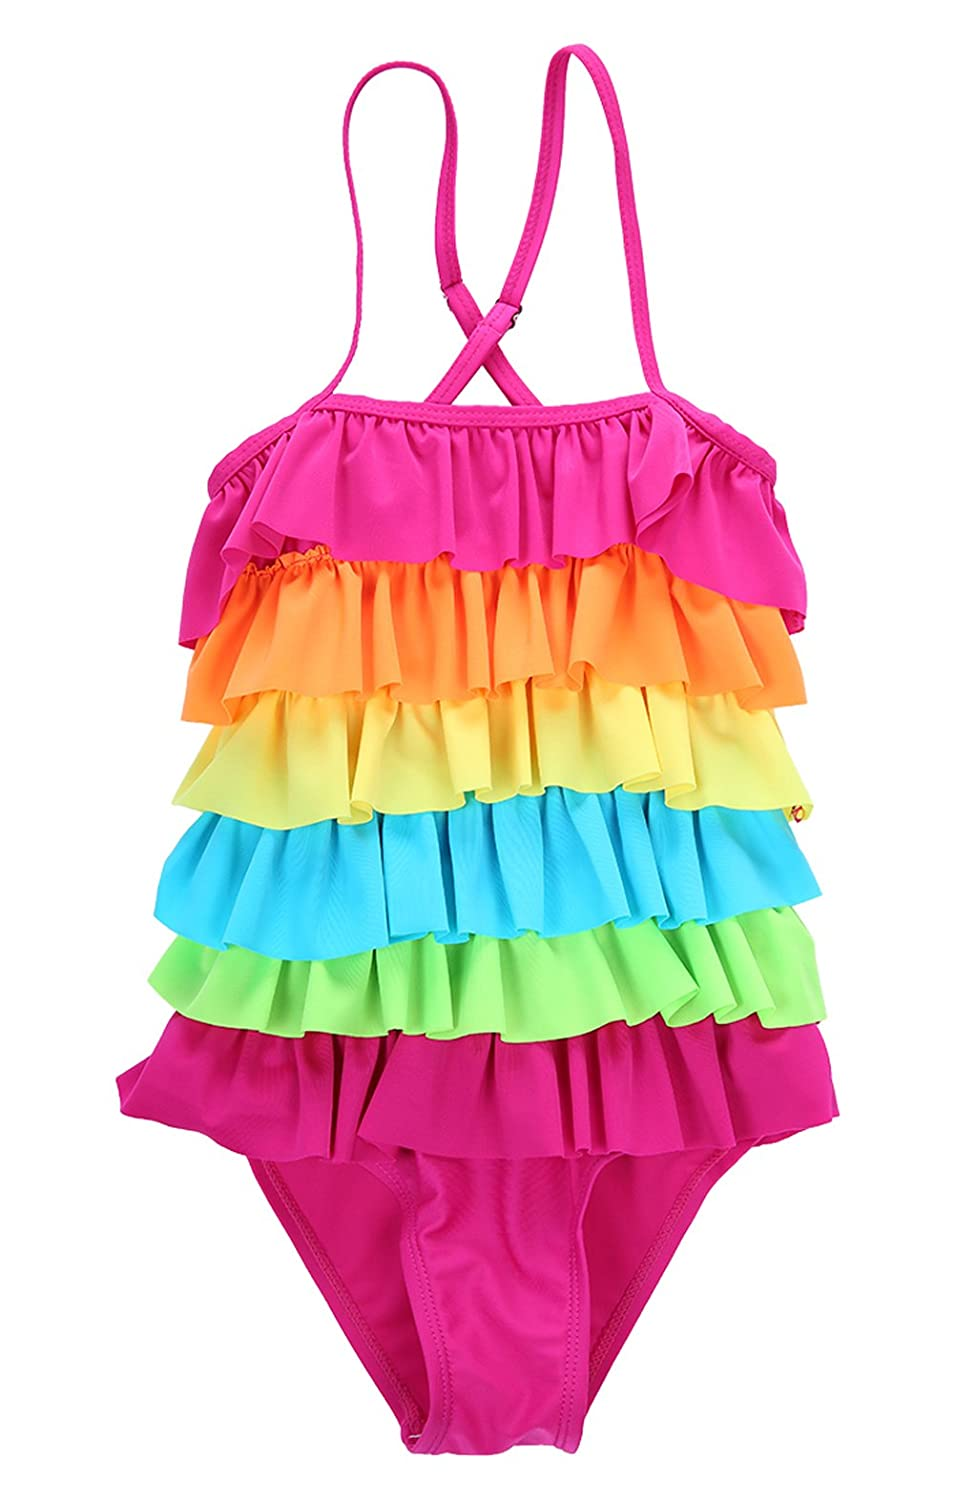 Little Girls Ruffled Rainbow Striped Bathing Suits Bikini Swimwear